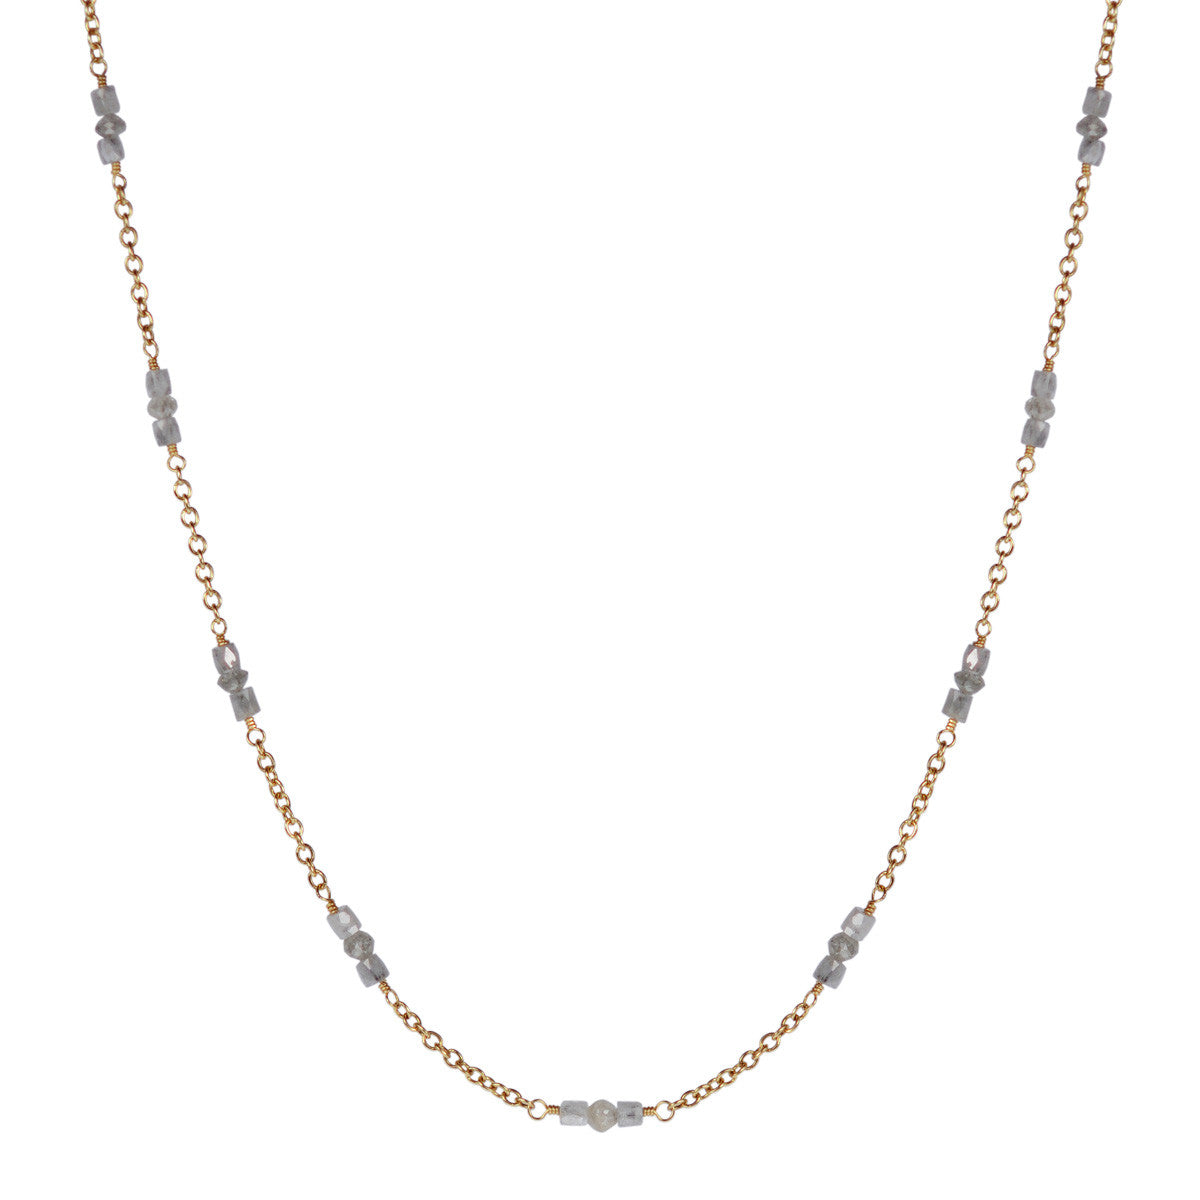 18K Gold Grey Diamond Station Necklace